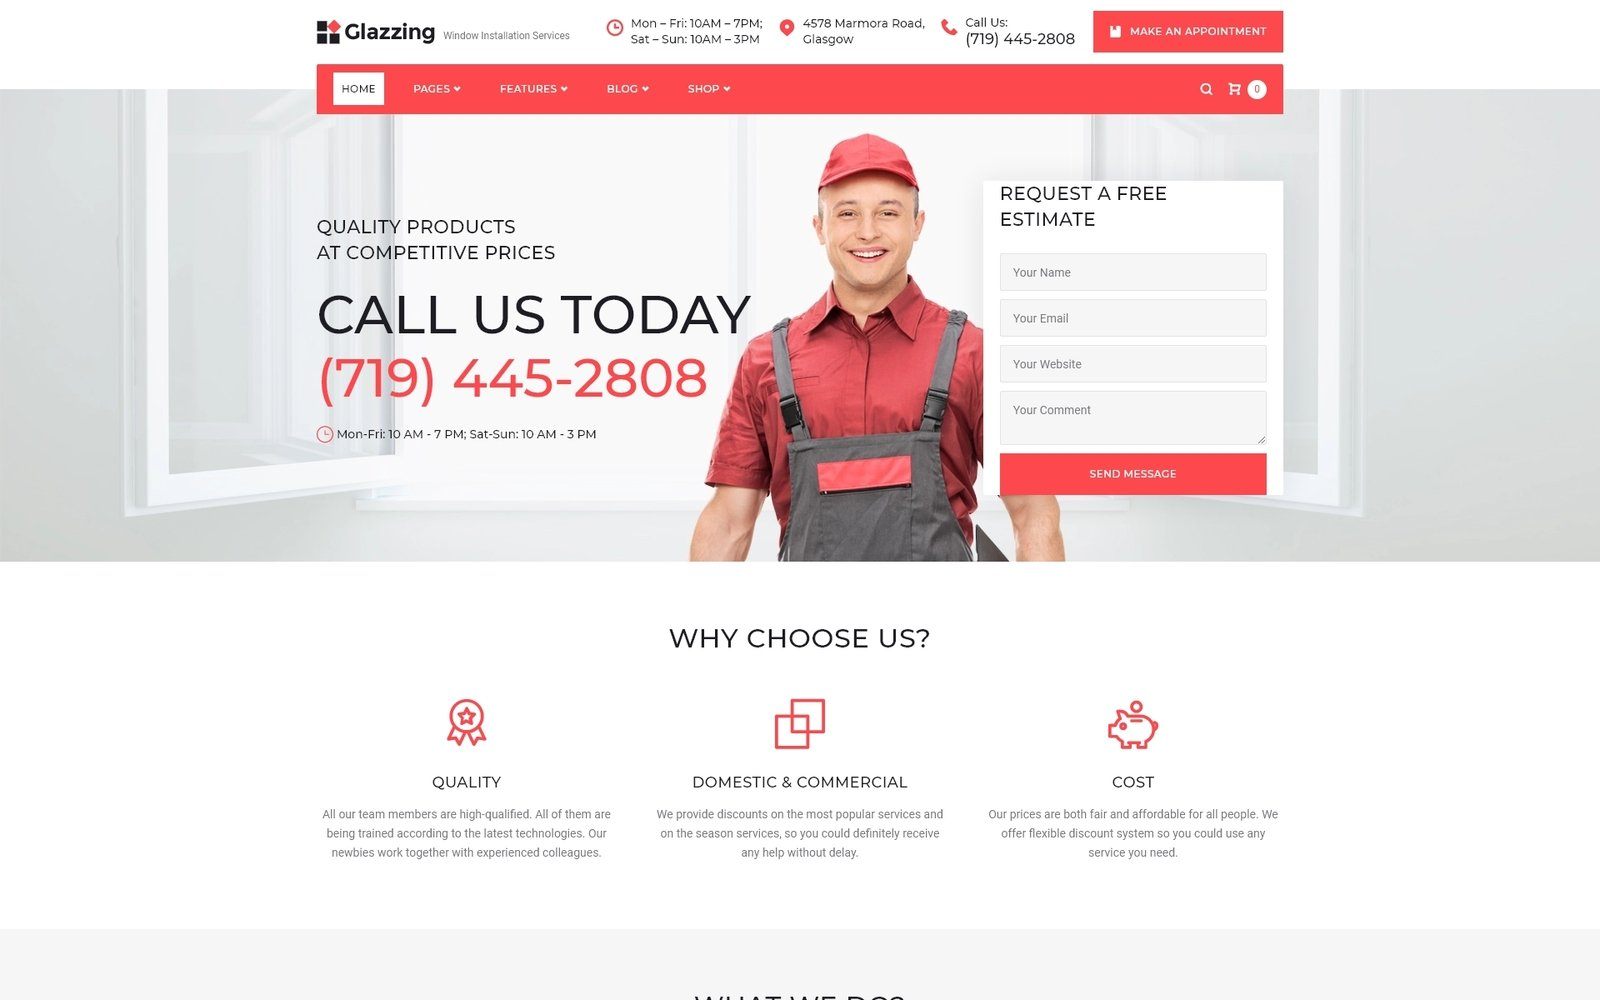 Glazzing - Window Installation Services WordPress Theme WordPress Theme